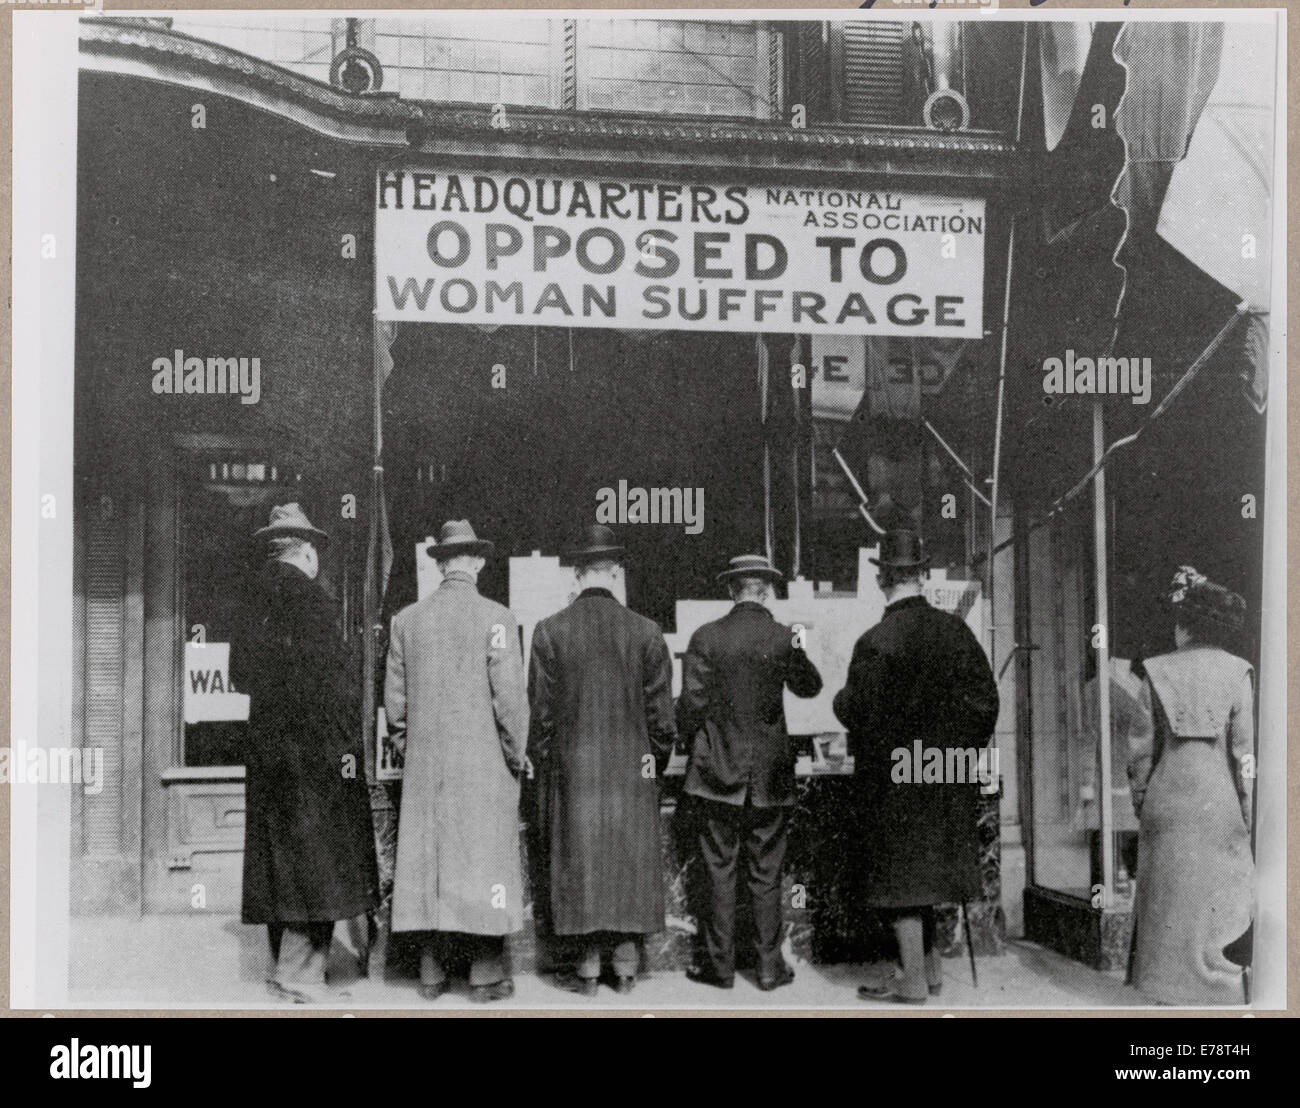 Passers-By Looking at Window Display at the Headquarters of National Association Opposed to Woman Suffrage, ca. - Stock Image